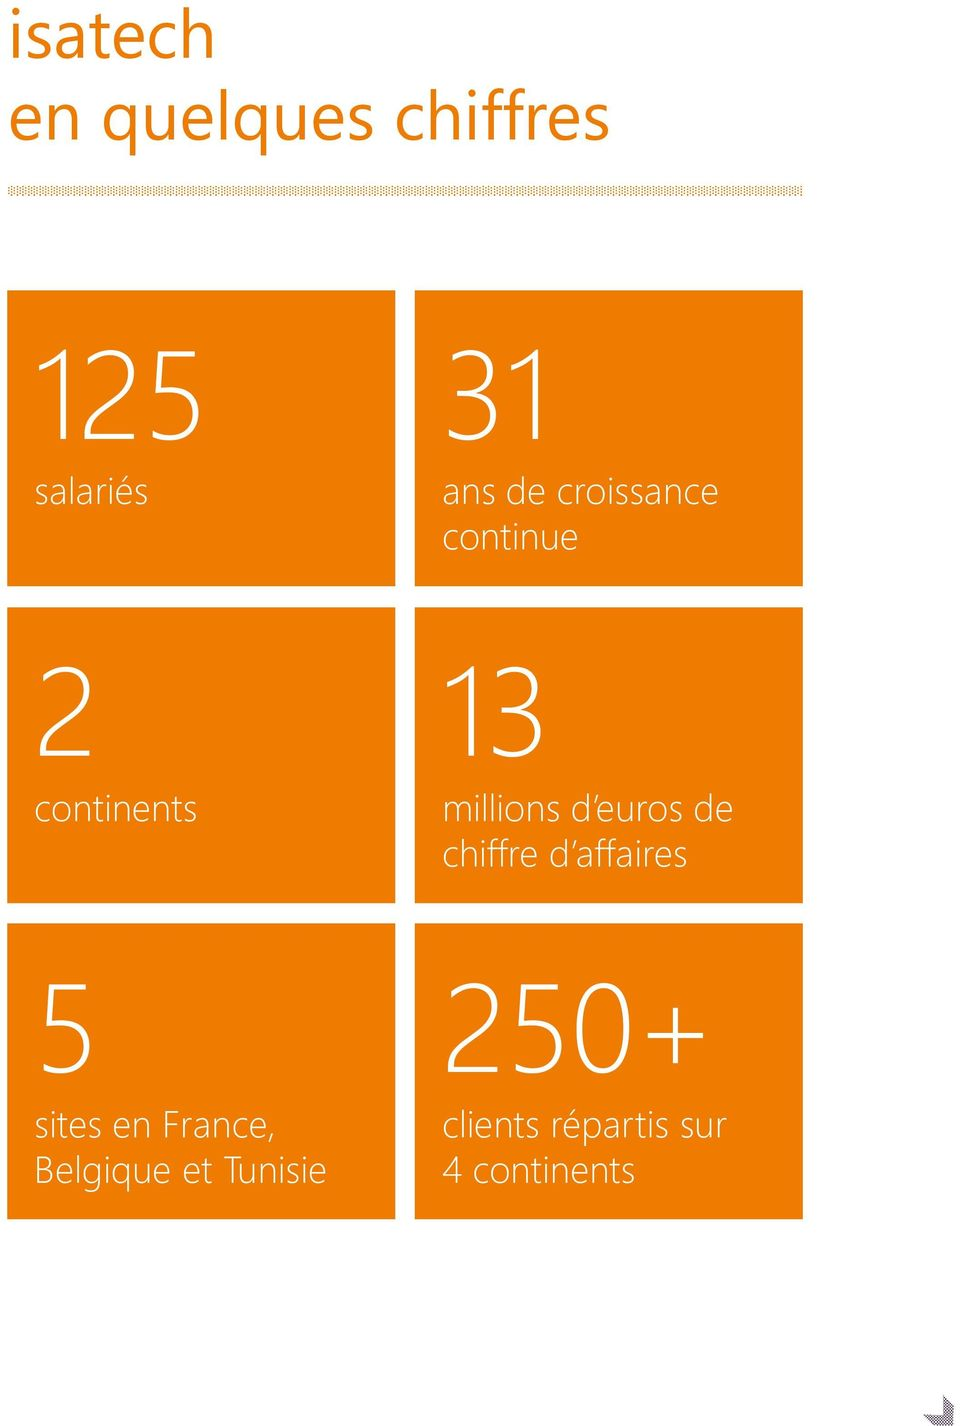 euros de chiffre d affaires 5 sites en France,